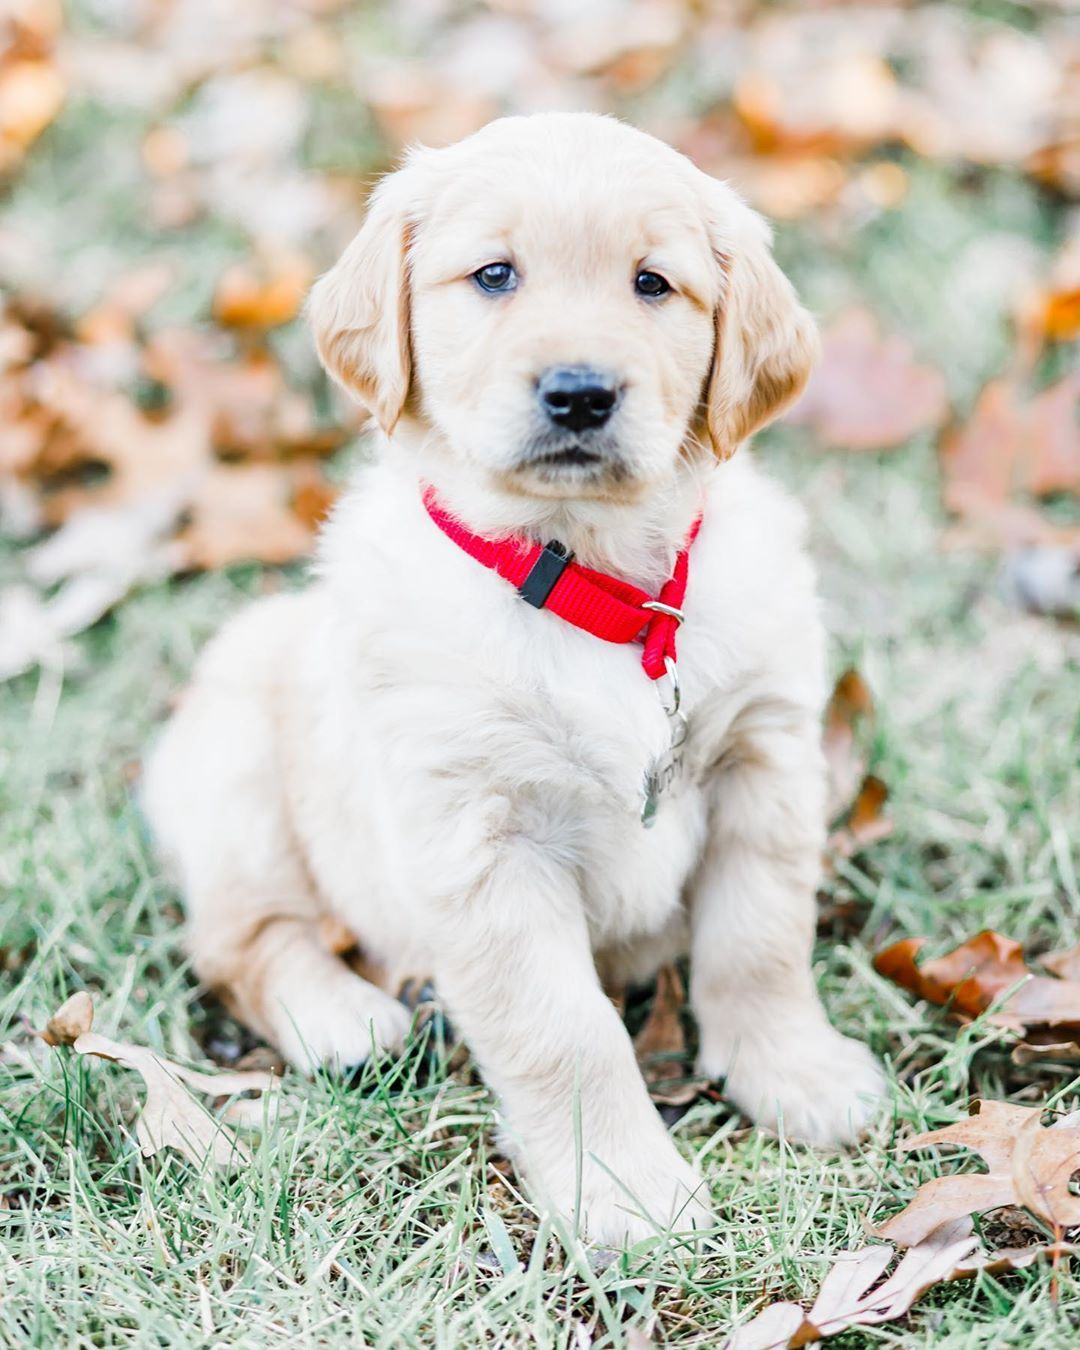 30 Best Dog Names For Gorgeous Golden Retrievers Pictures Dogtime In 2020 Dog Names Cute Names For Dogs Boy Dog Names